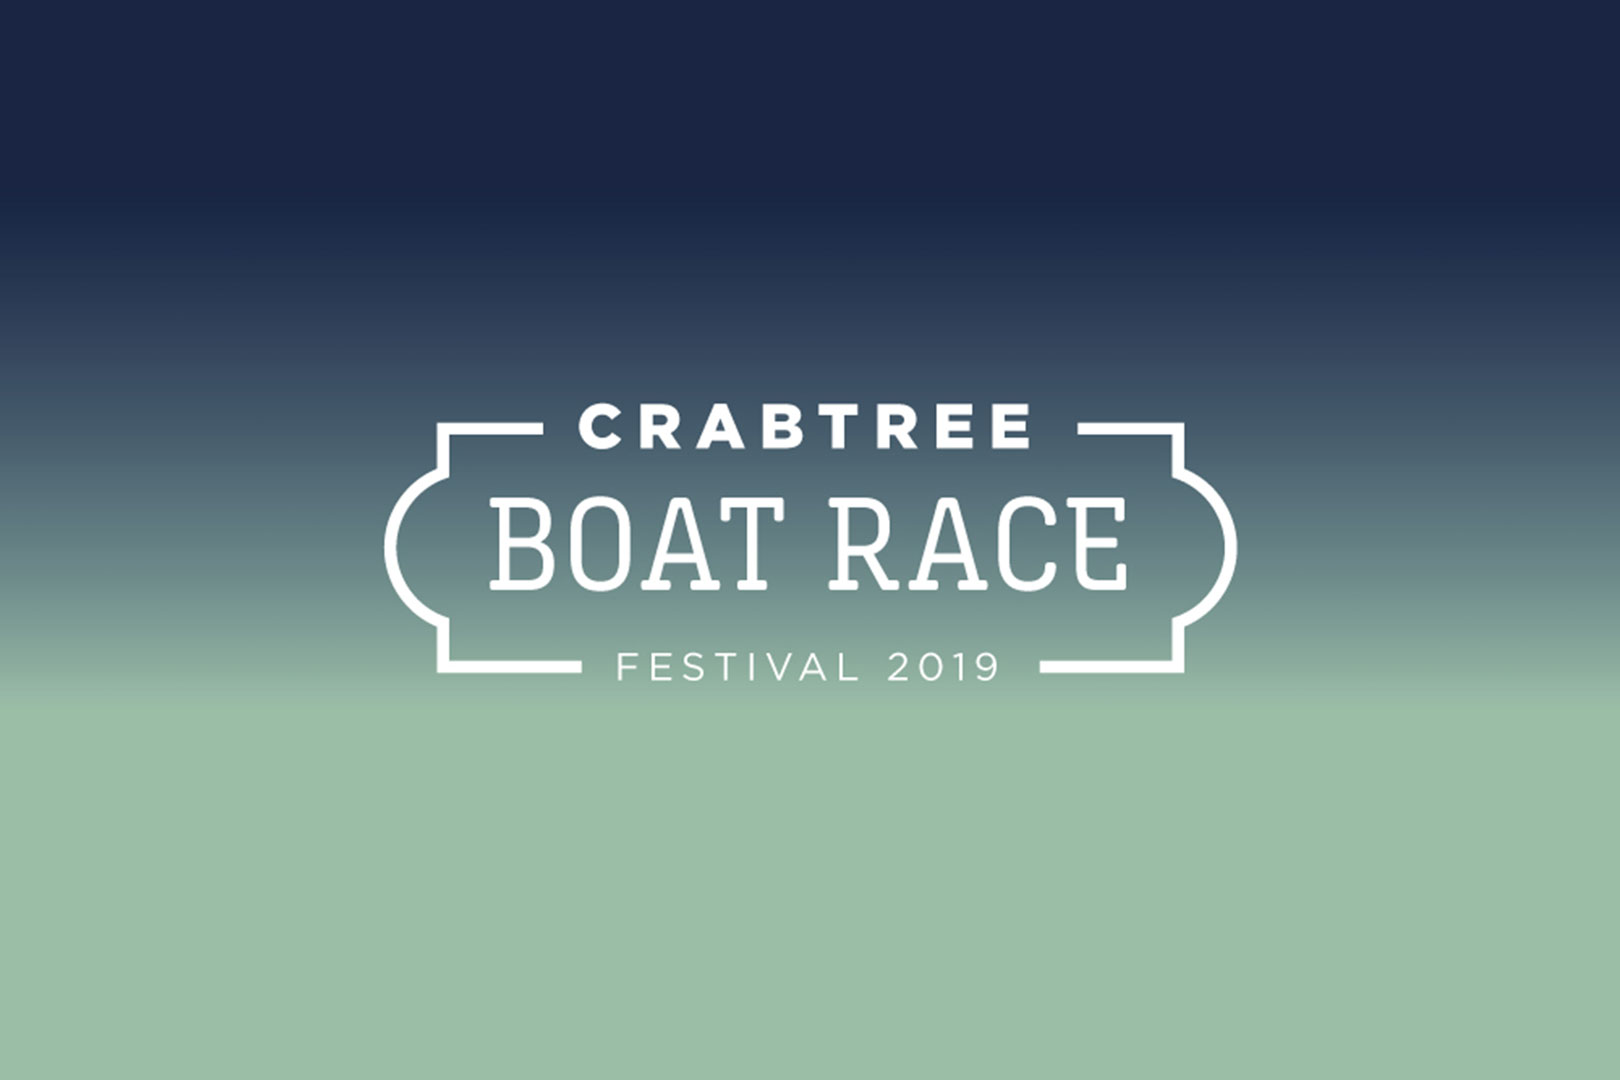 Crabtree Boat Race Festival